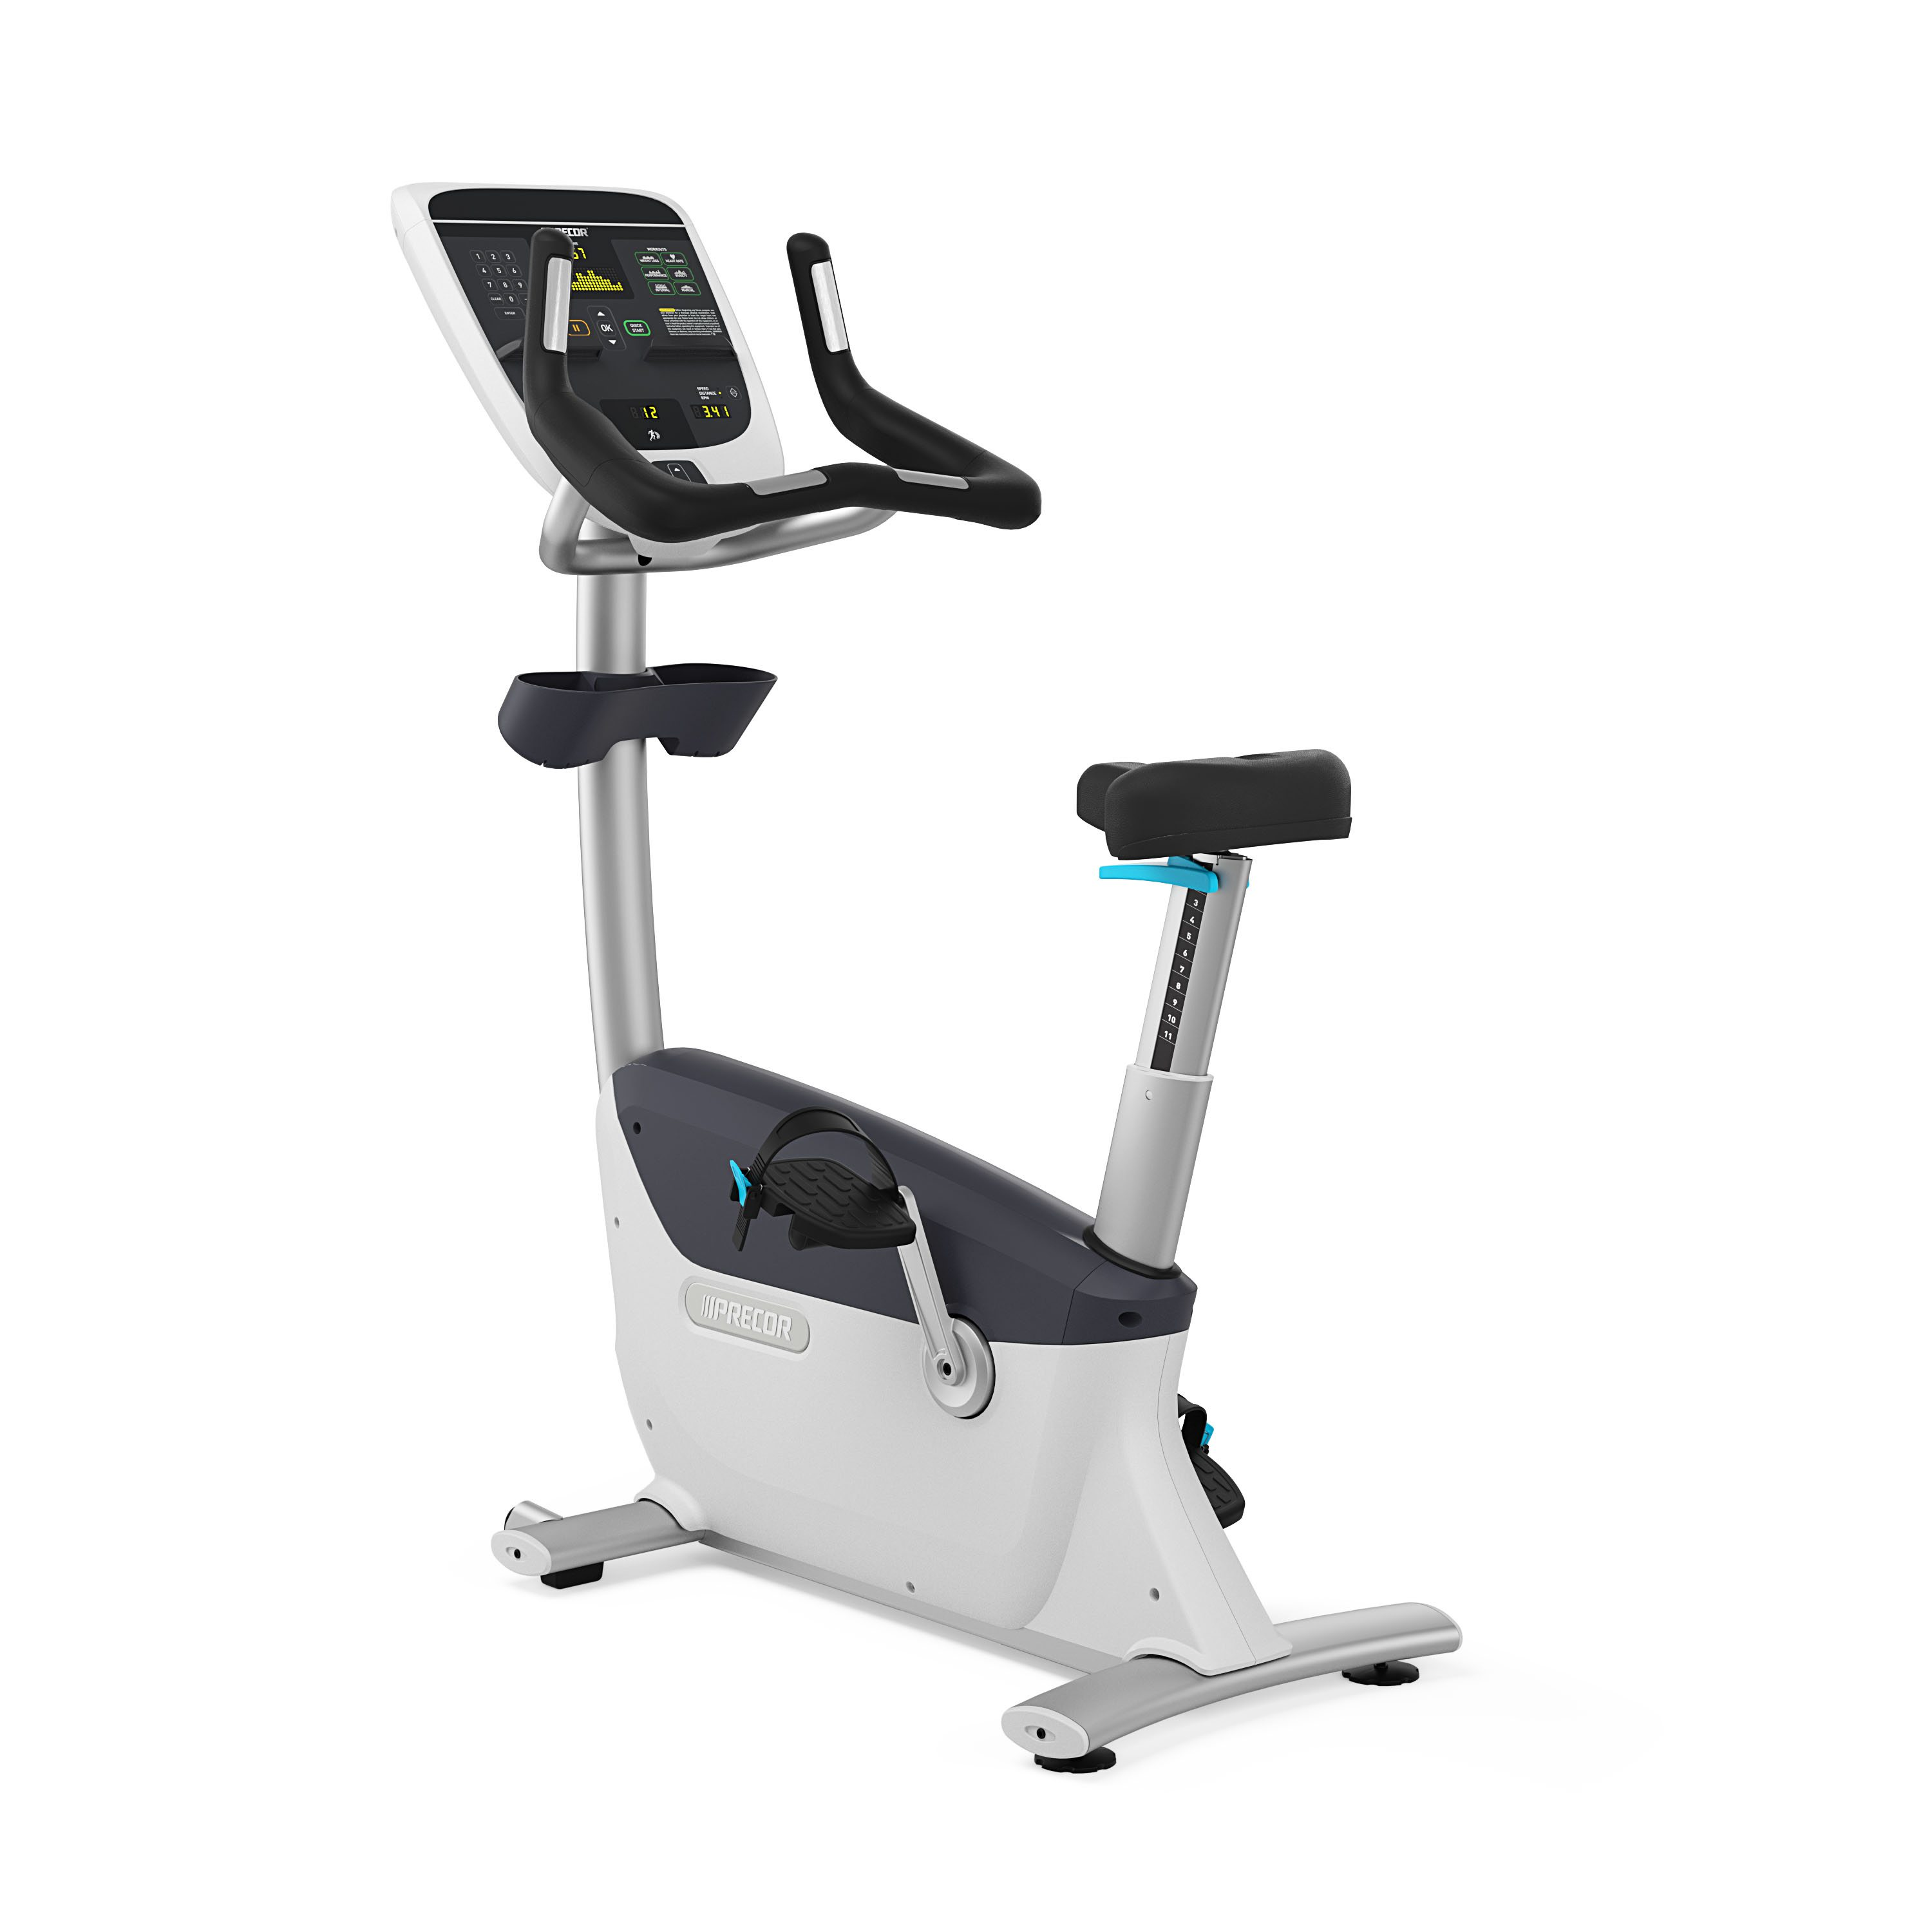 Precor Ubk615 Upright Bike Fitness Expo